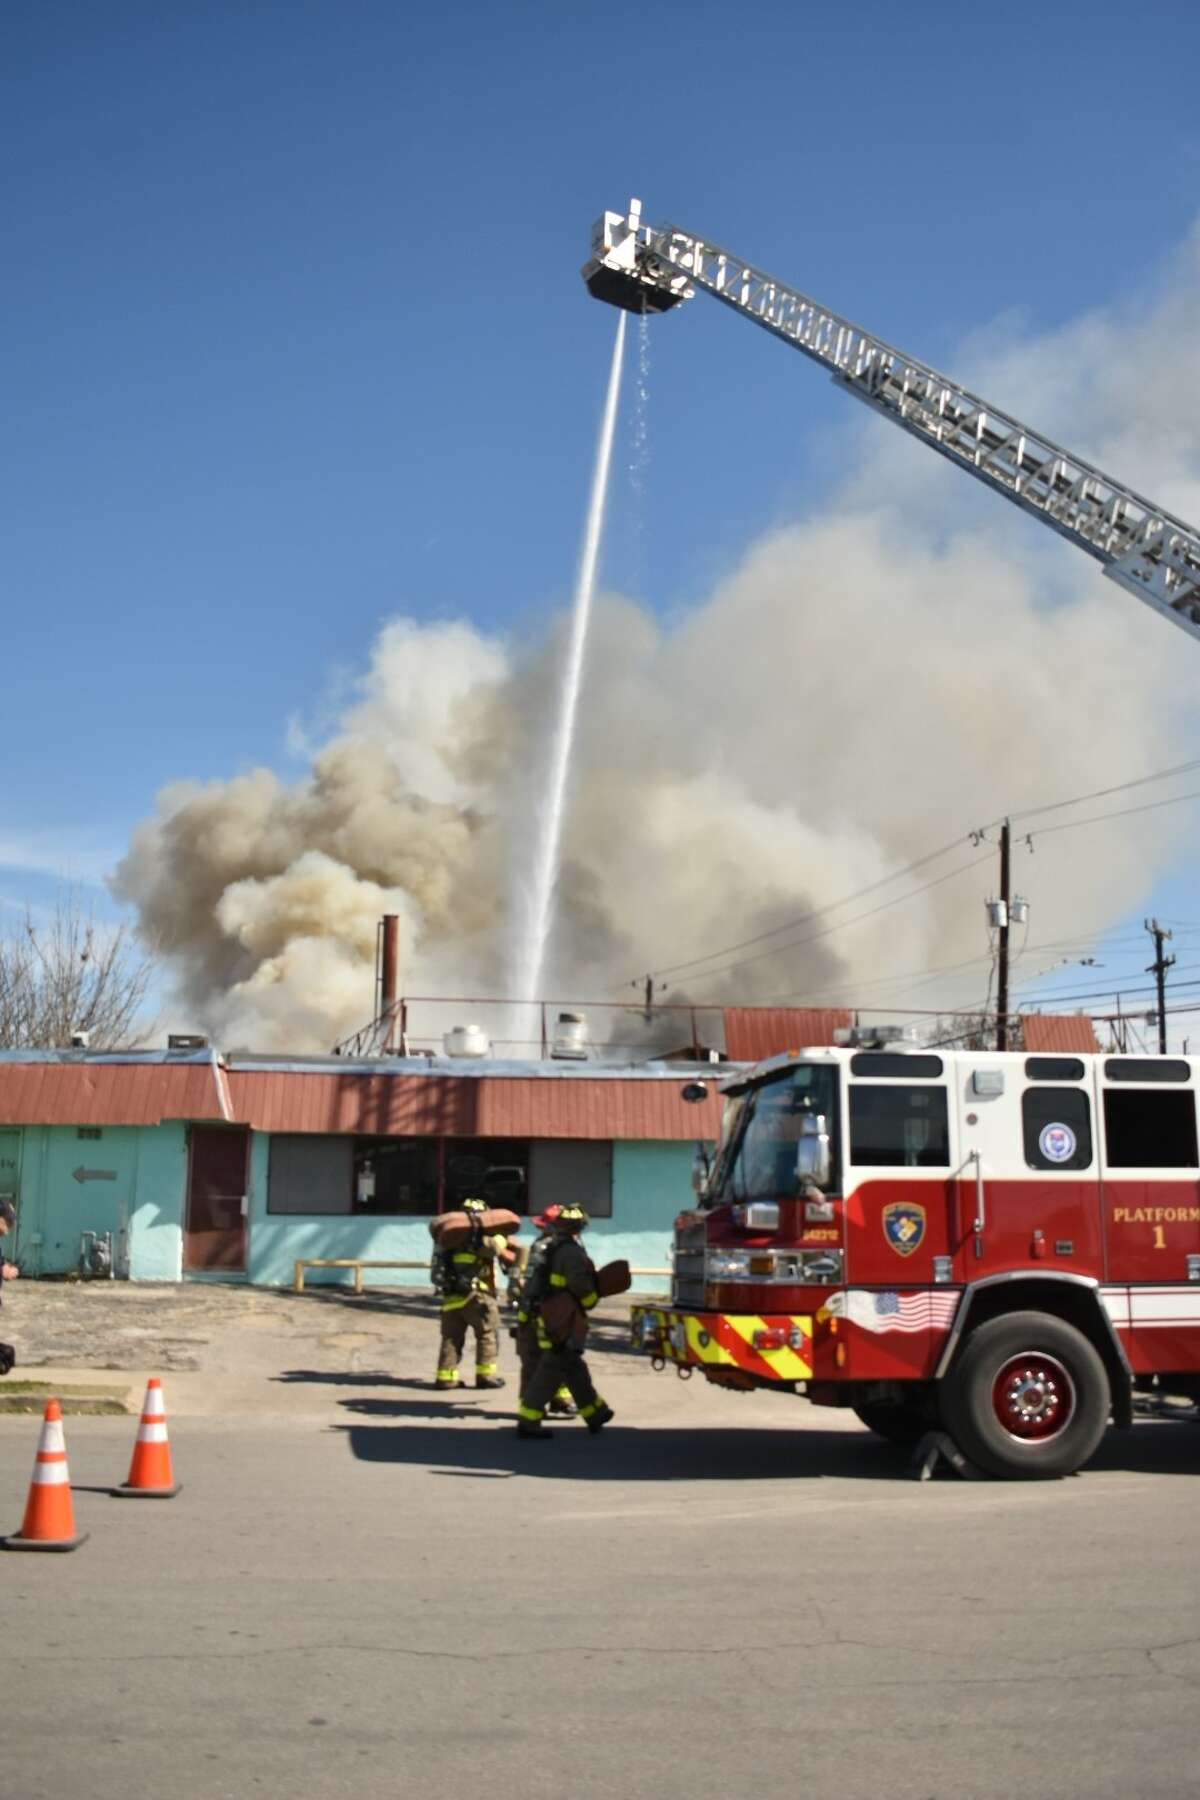 The San Antonio Fire Department responded to a structure fire on the 1500 block of South Flores Street.